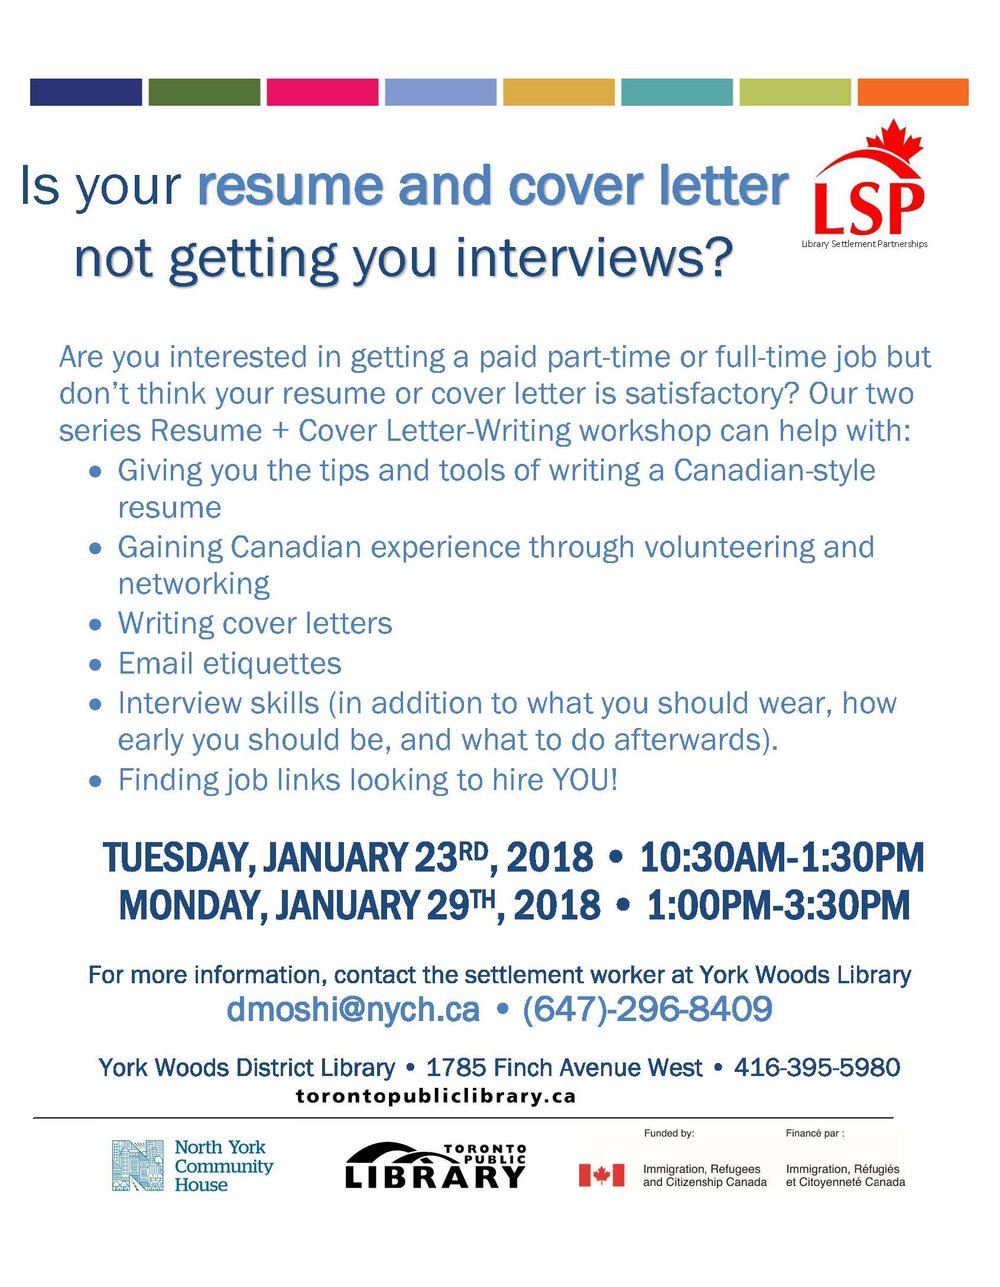 Are You Interested In Getting A Paid Part Time Or Full Time Job But Donu0027t  Think Your Resume Or Cover Letter Is Satisfactory? Our Workshops Can Help  With: